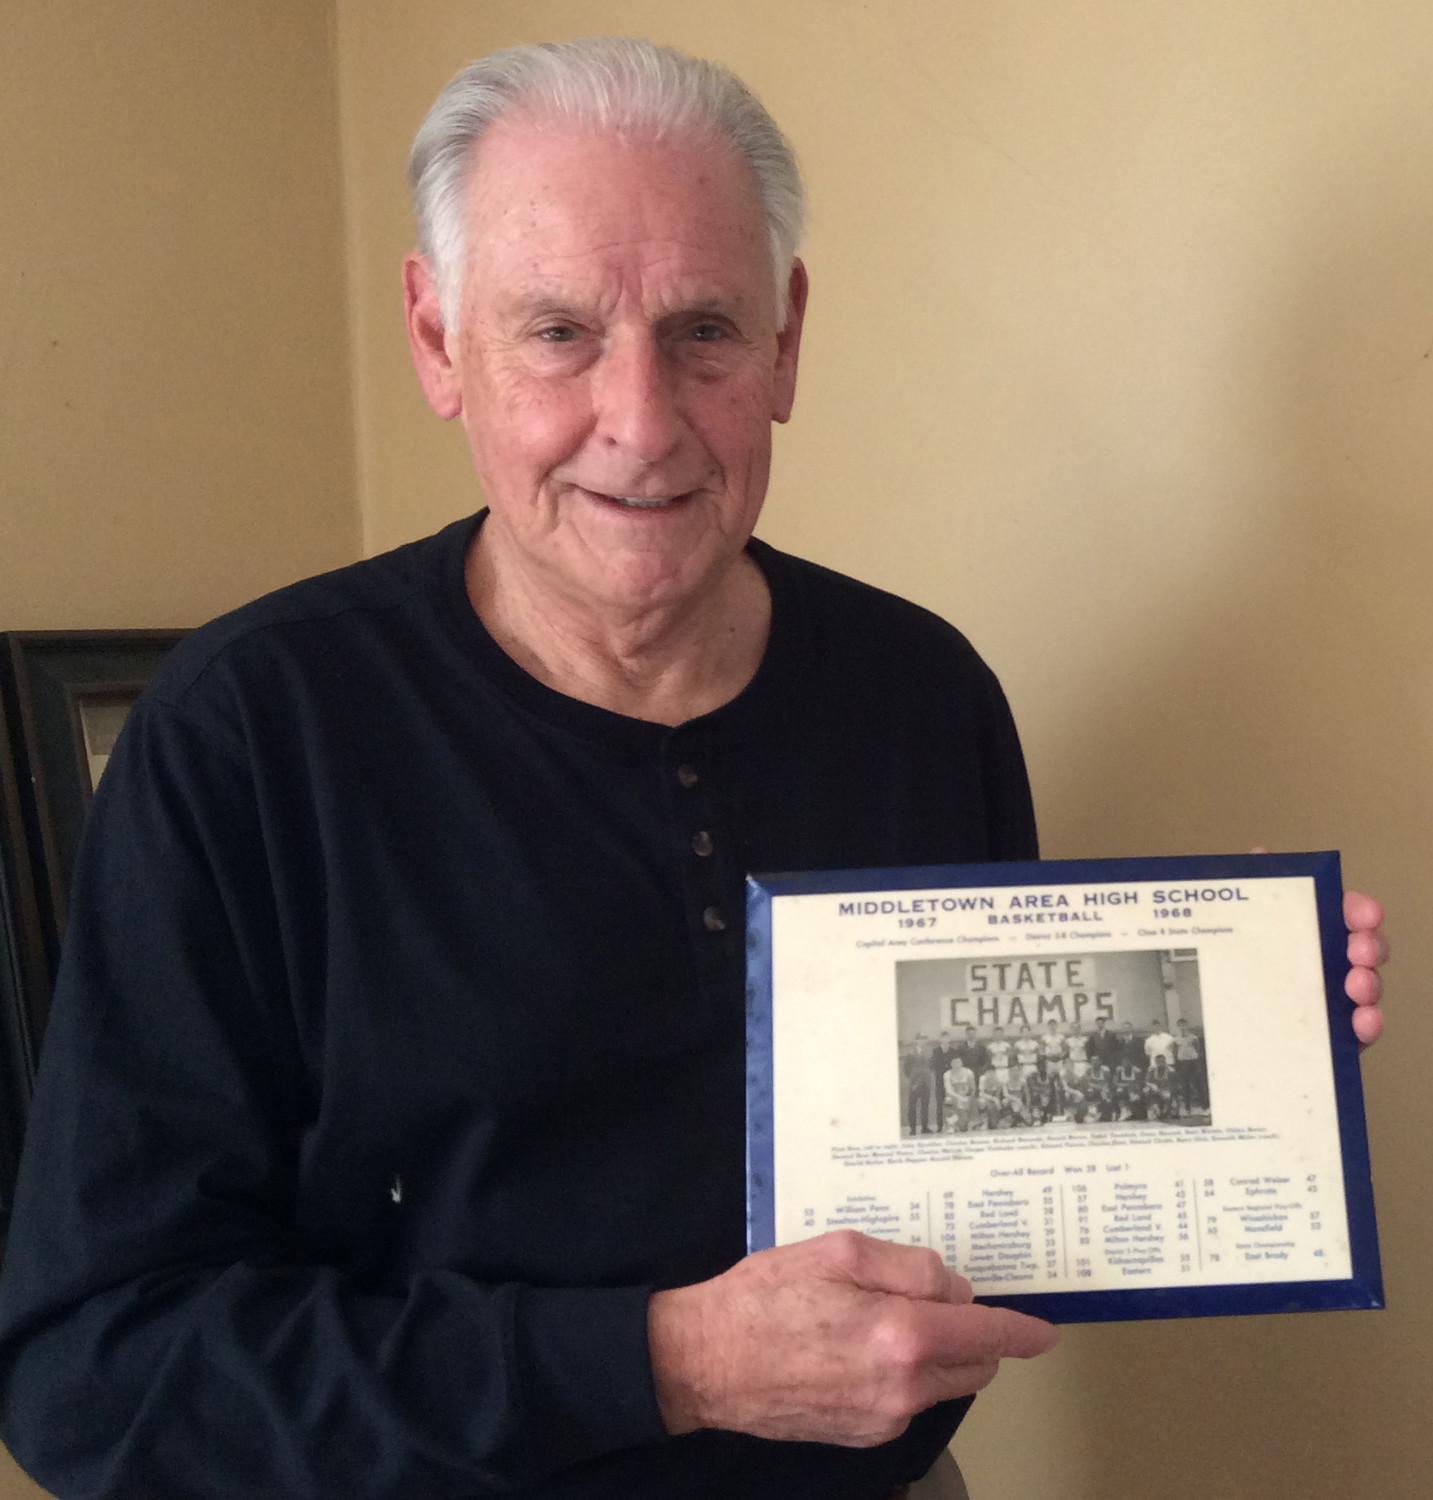 Casper Voithofer shows the team picture from the 1968 state championship Middletown varsity boys basketball season that he keeps in a room at his house in Lower Swatara Township.